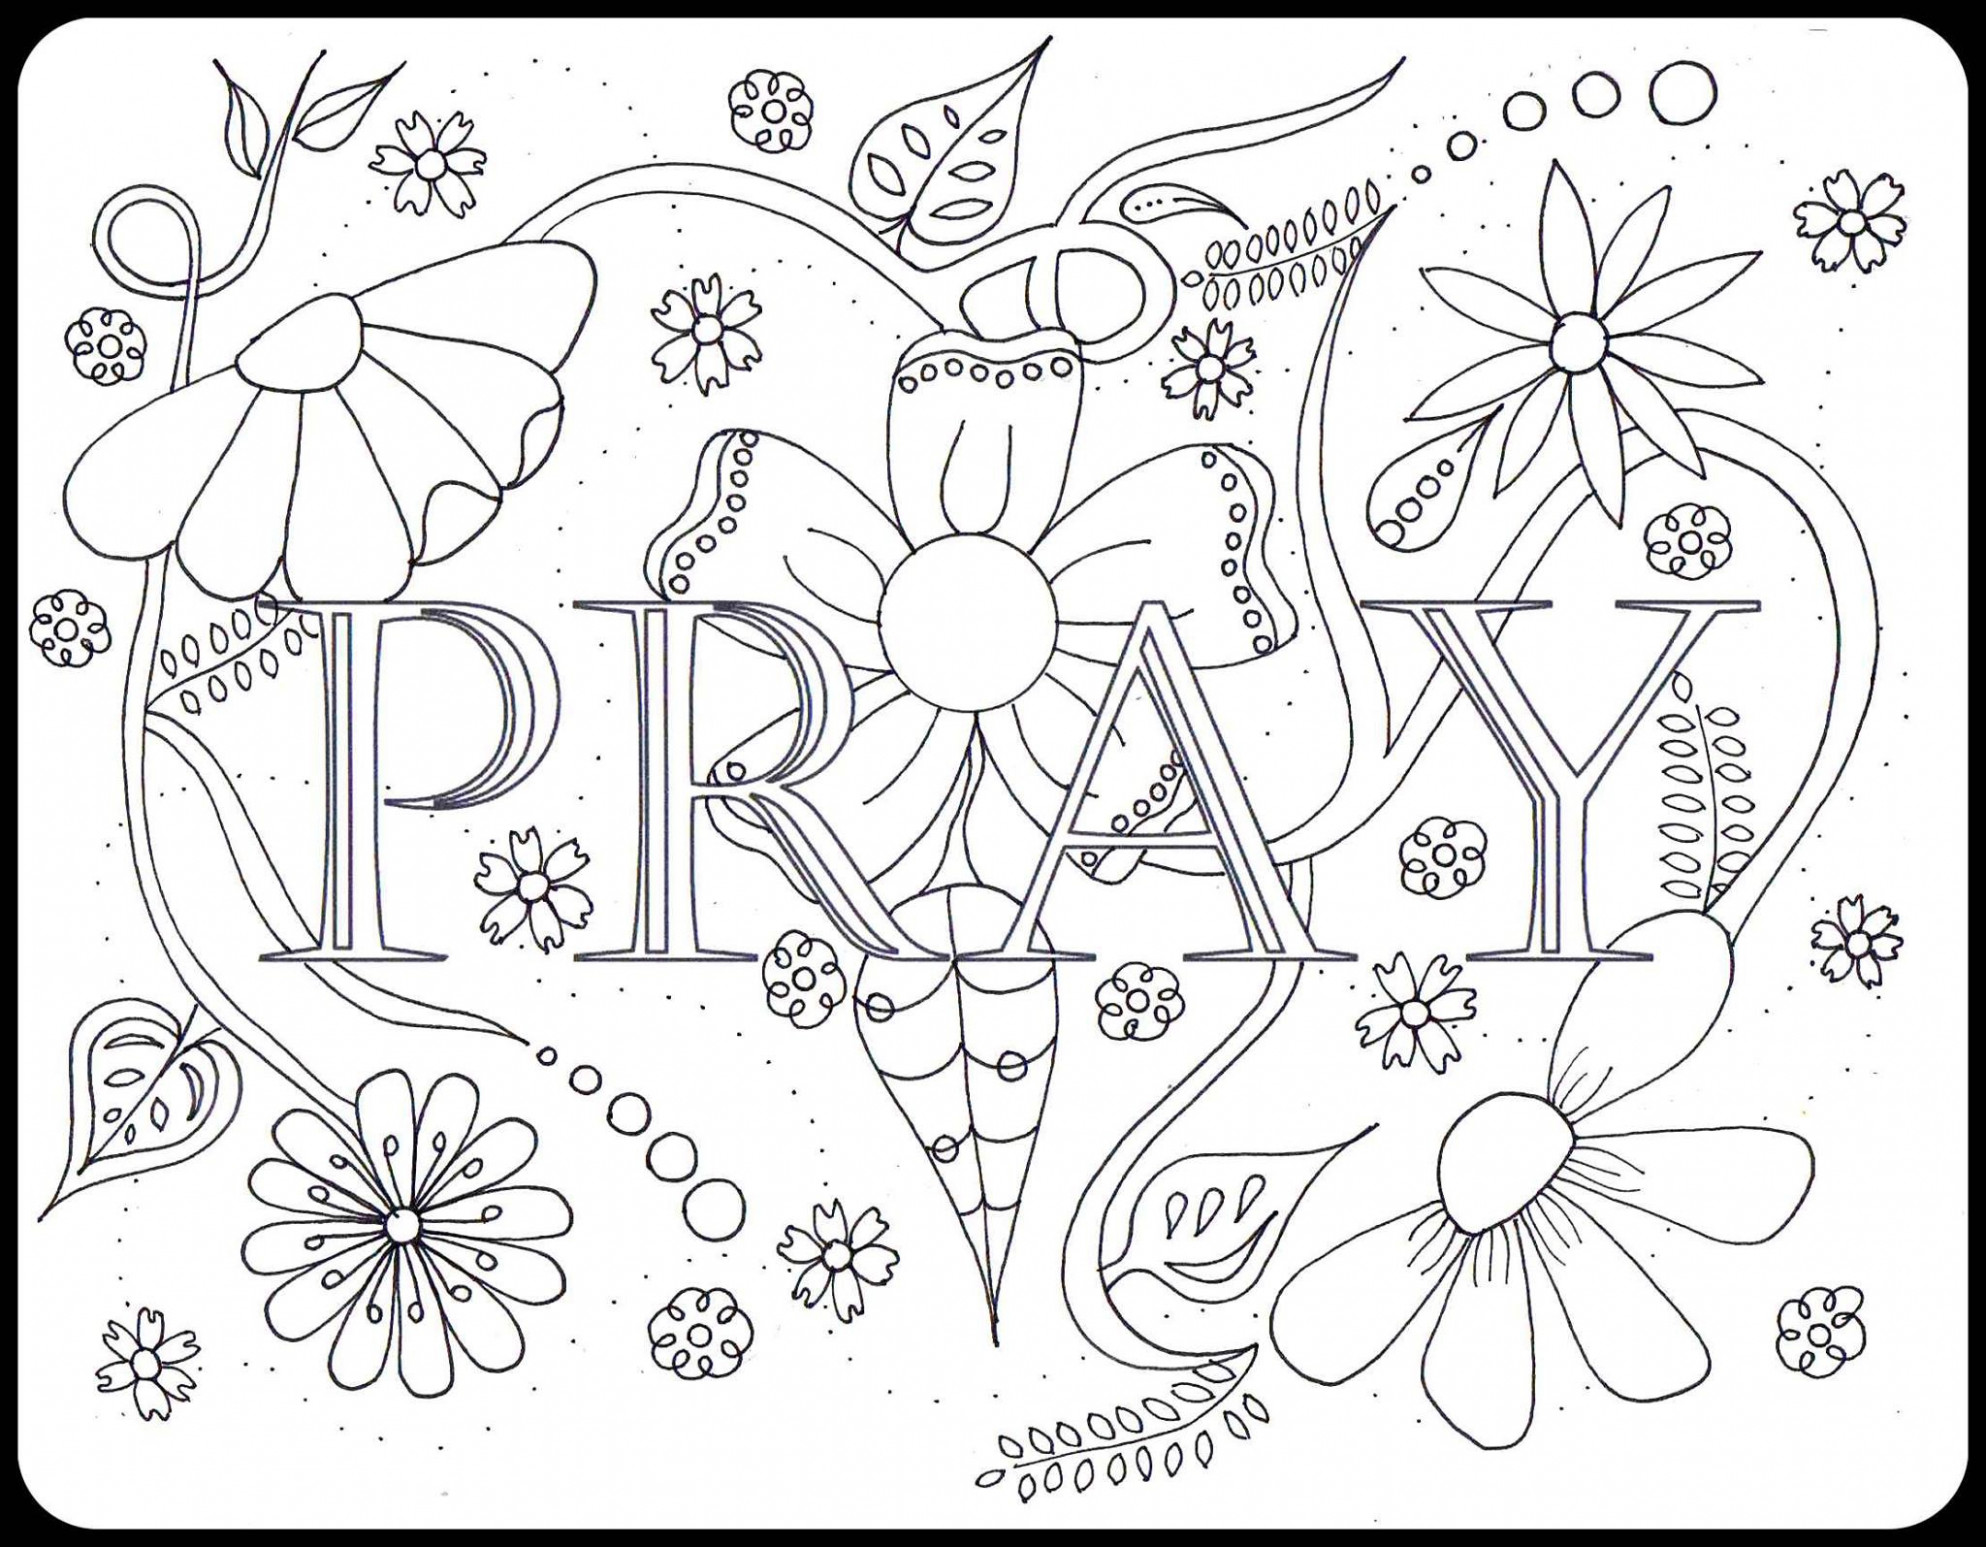 Lds Coloring Pages Coloring Book | Thejourneyvisvi.com Lds Coloring ..